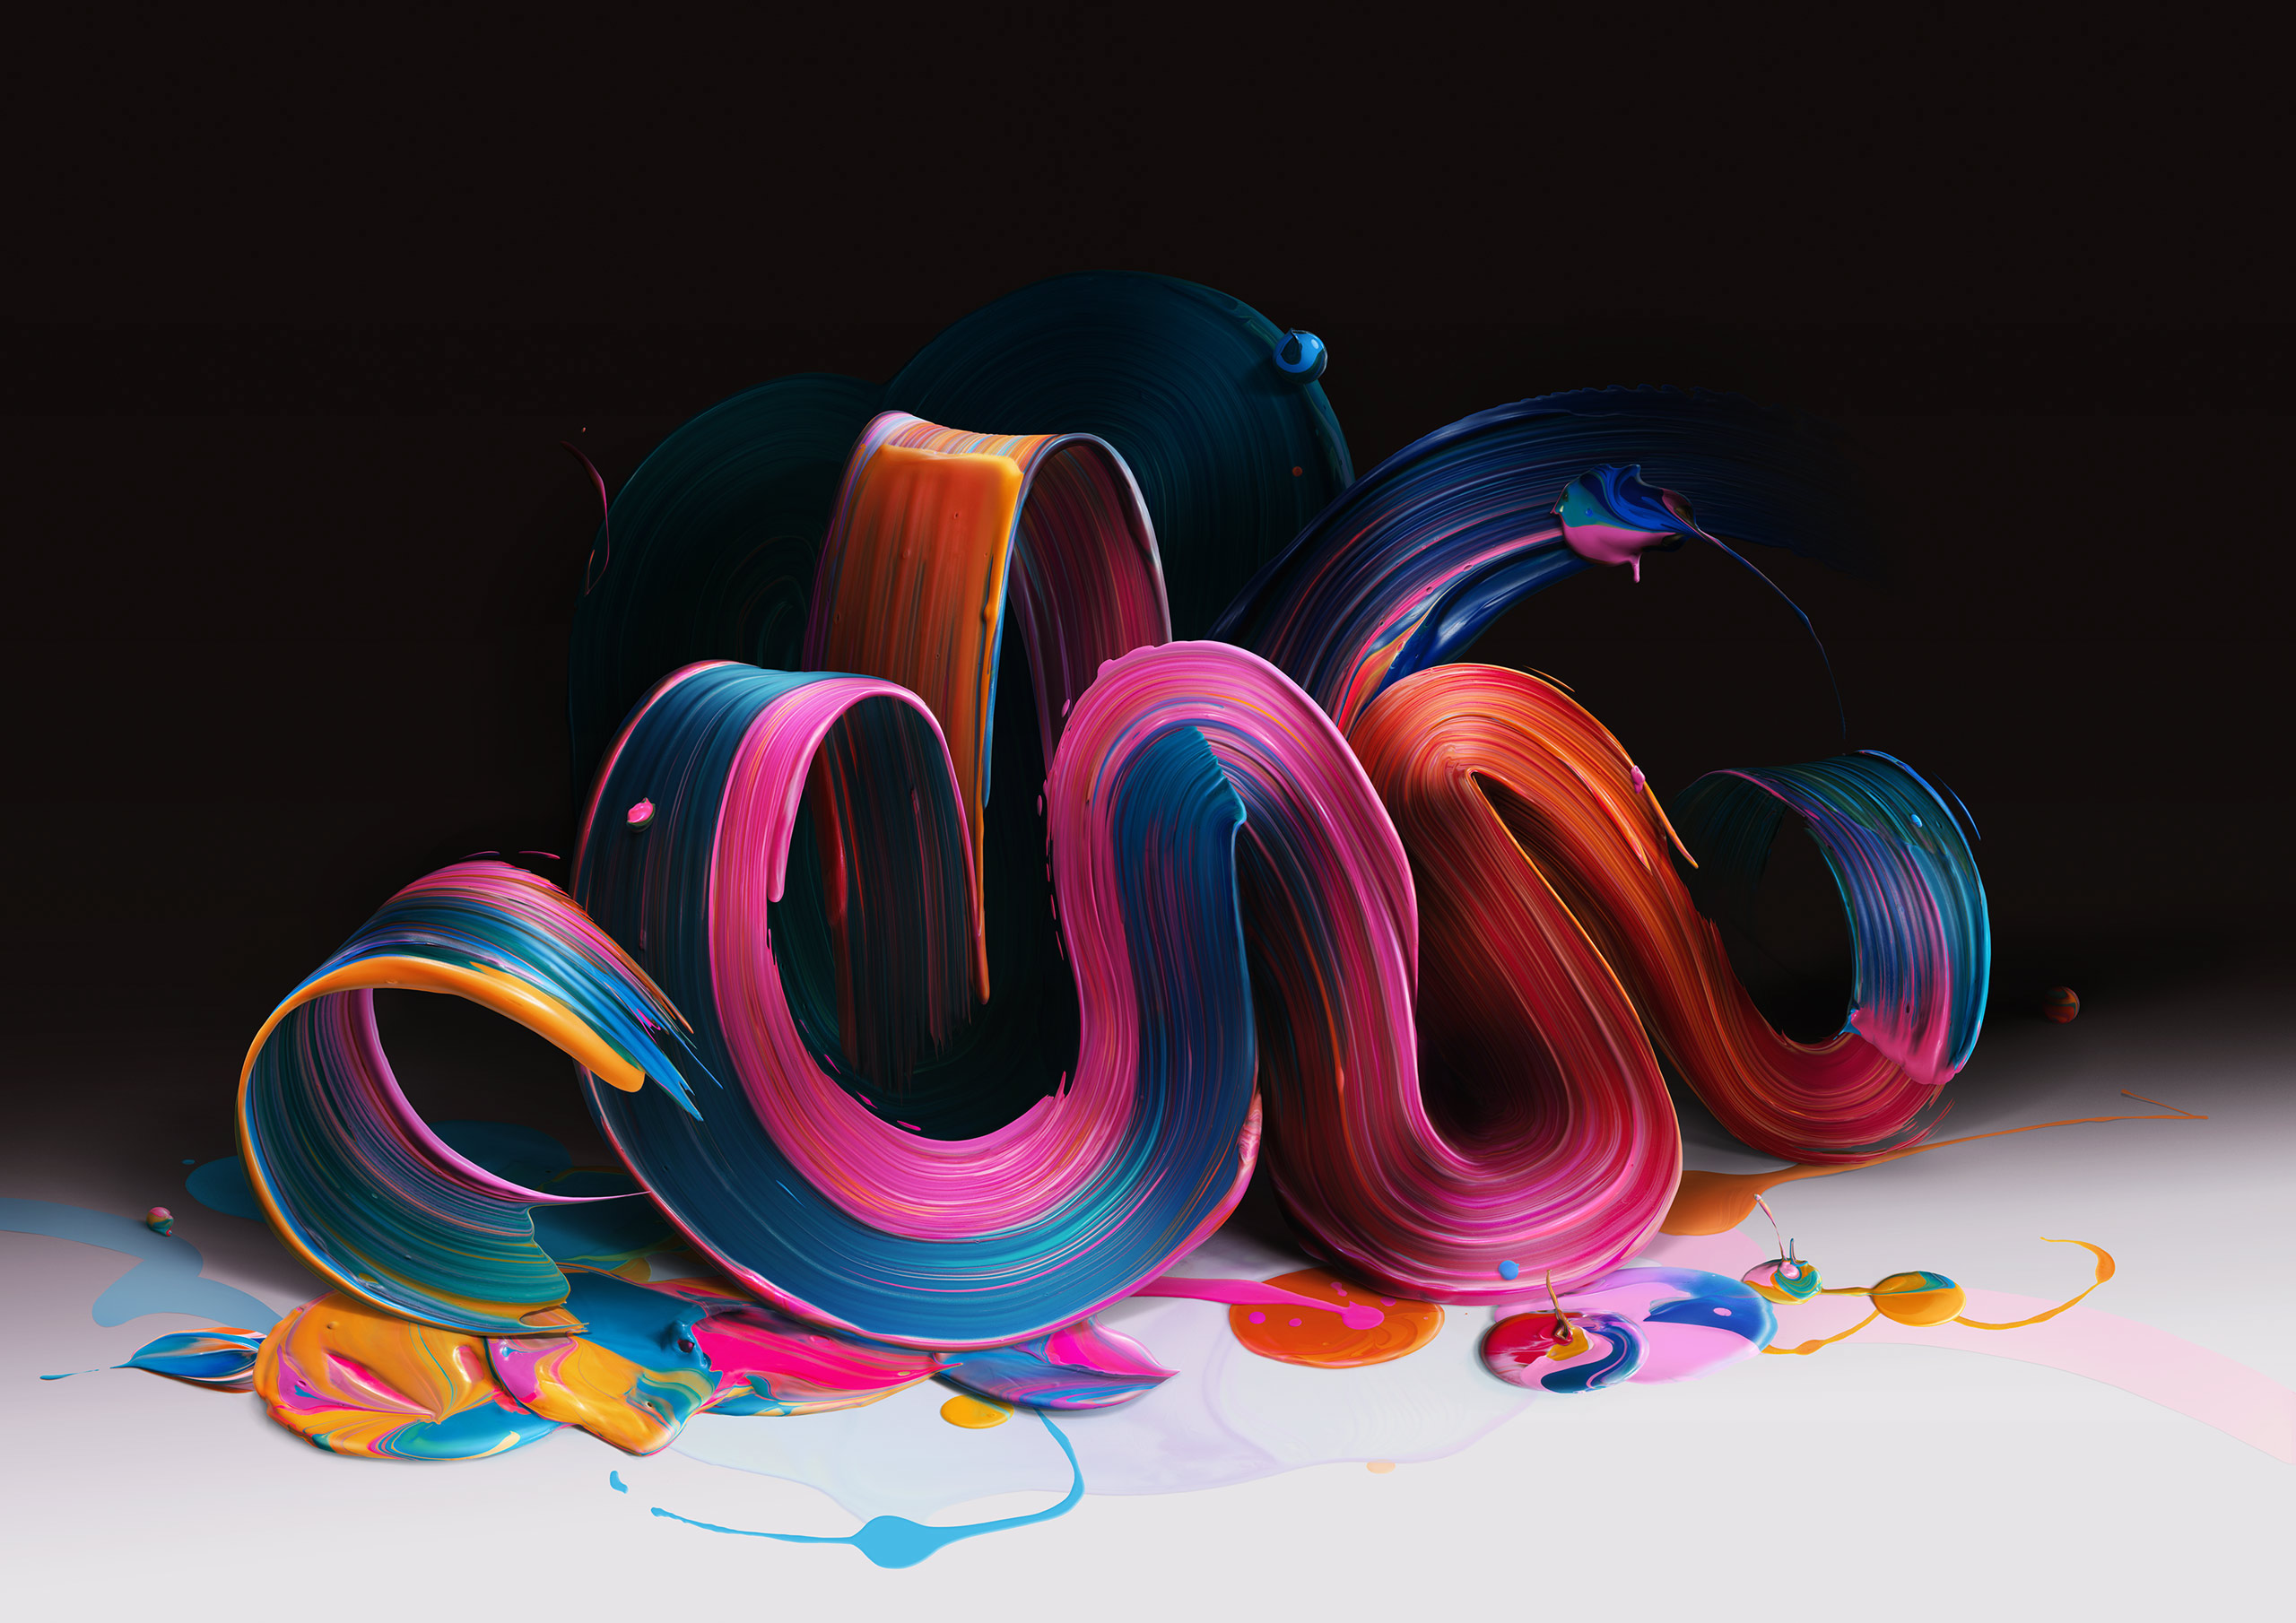 How to get Featured on Abduzeedo - 5 Things you can do